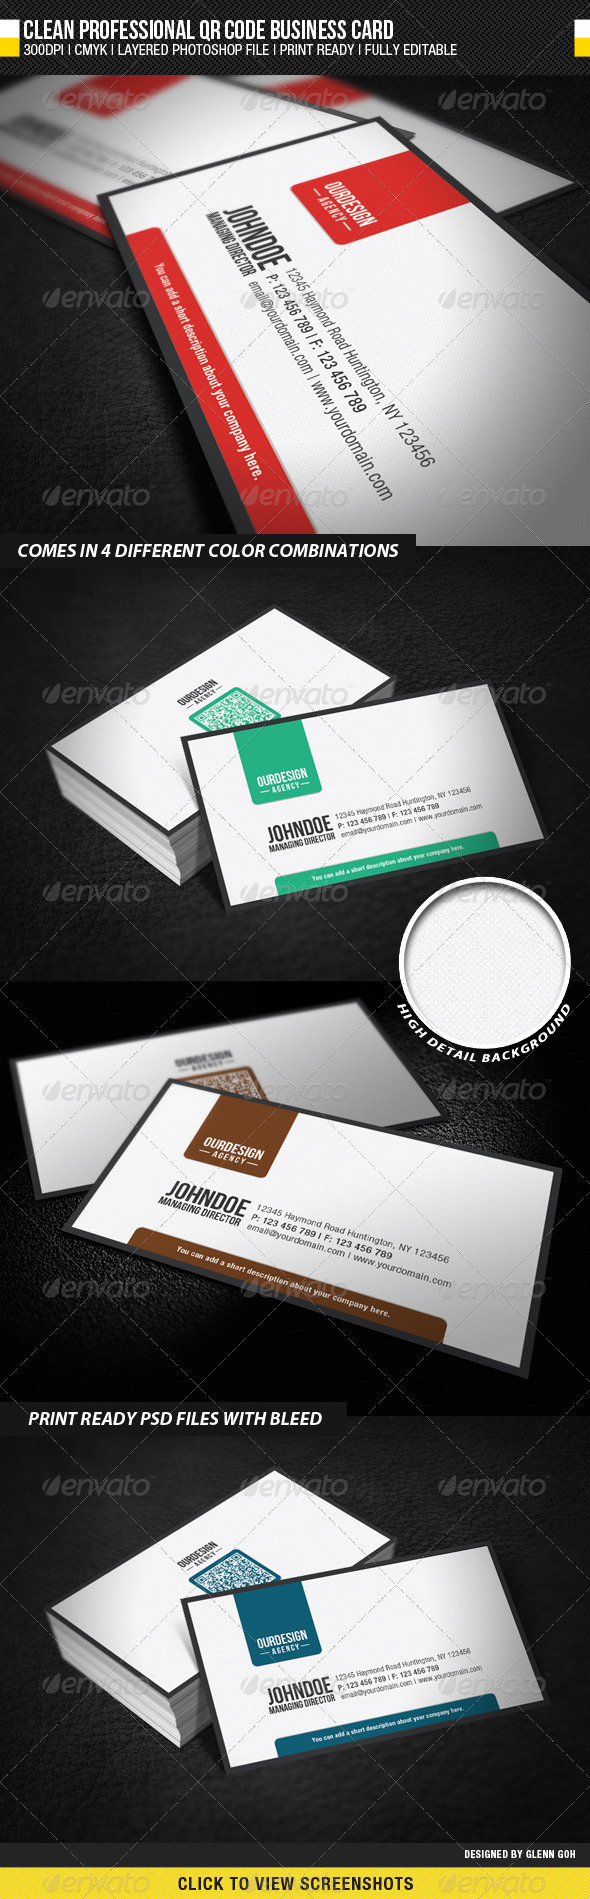 Clean Professional QR Code Business Card - Business Cards Print Templates